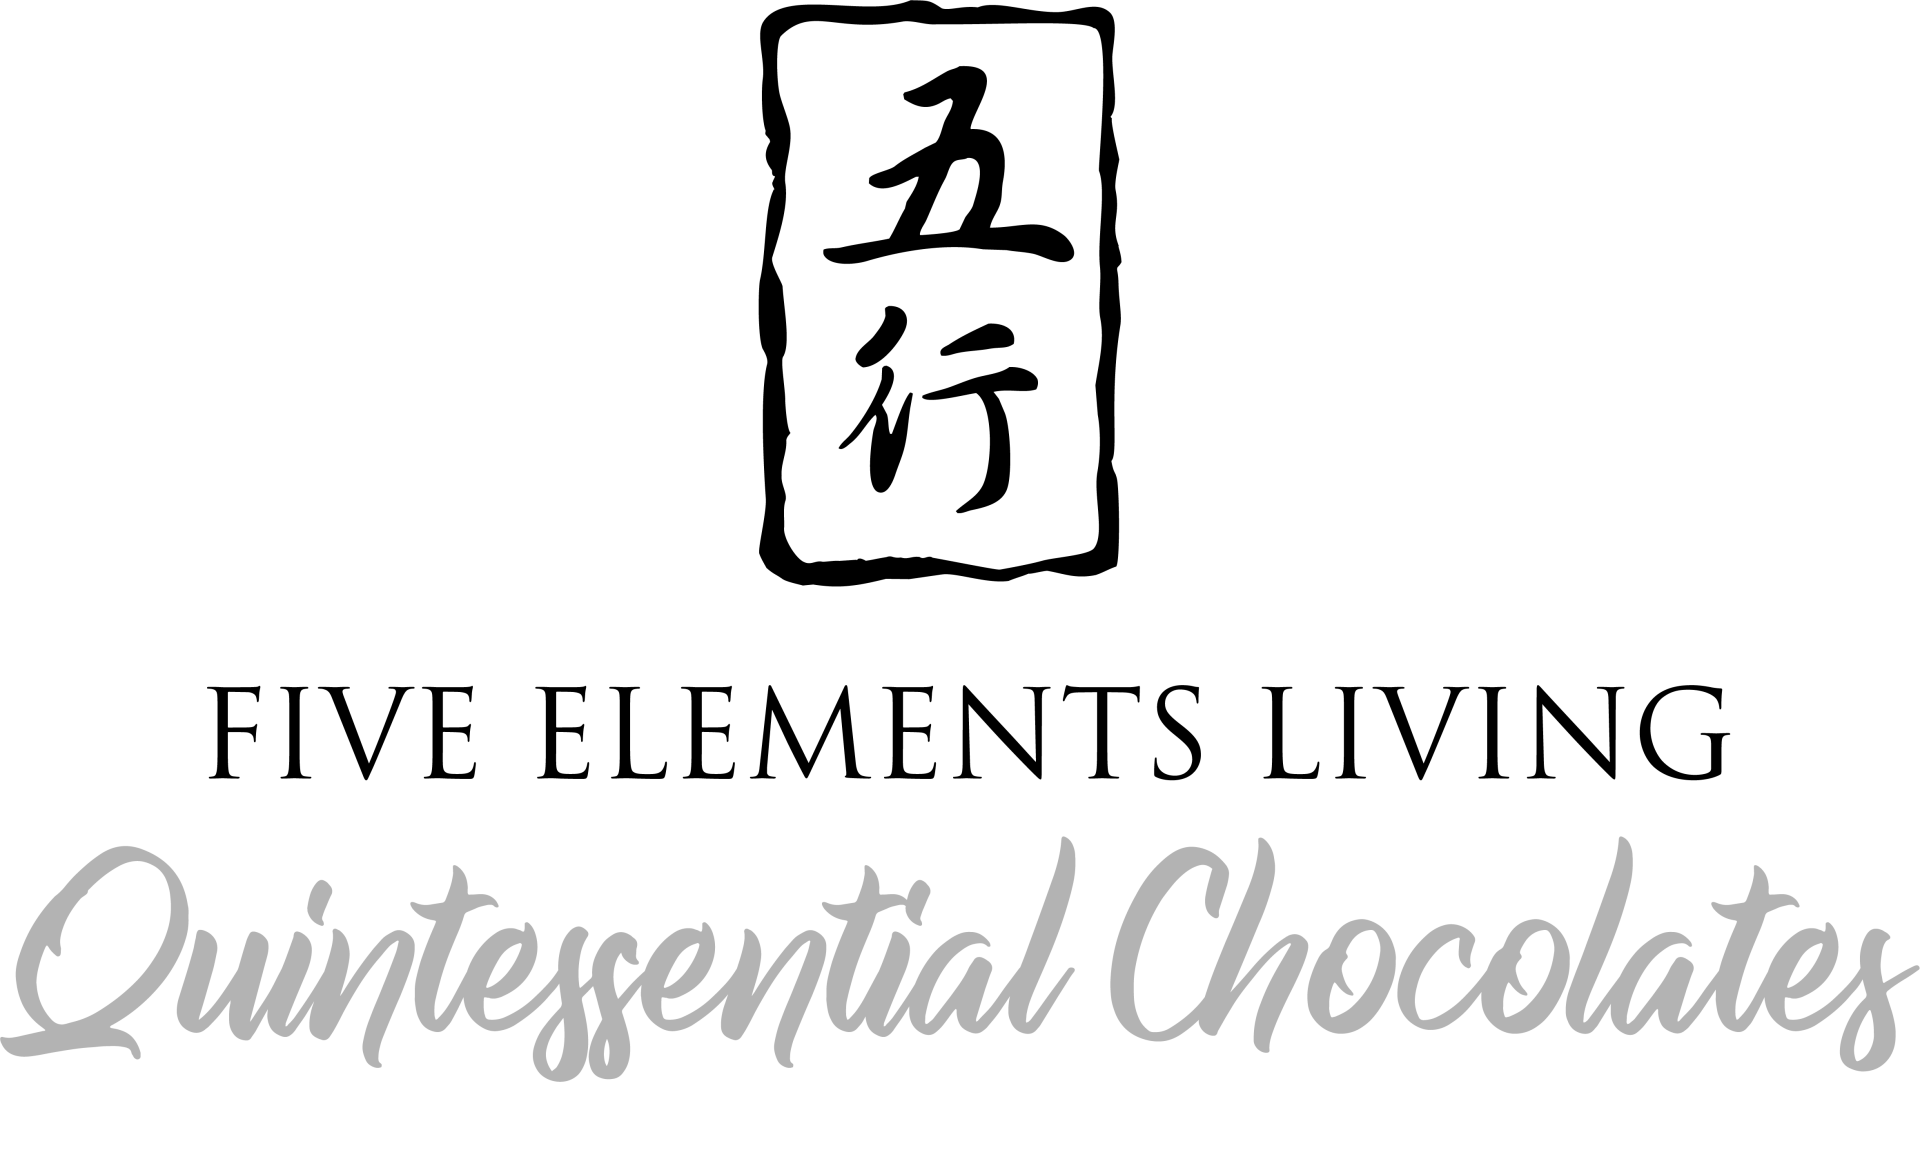 Fel_quintessential_chocolates_logo_black Png